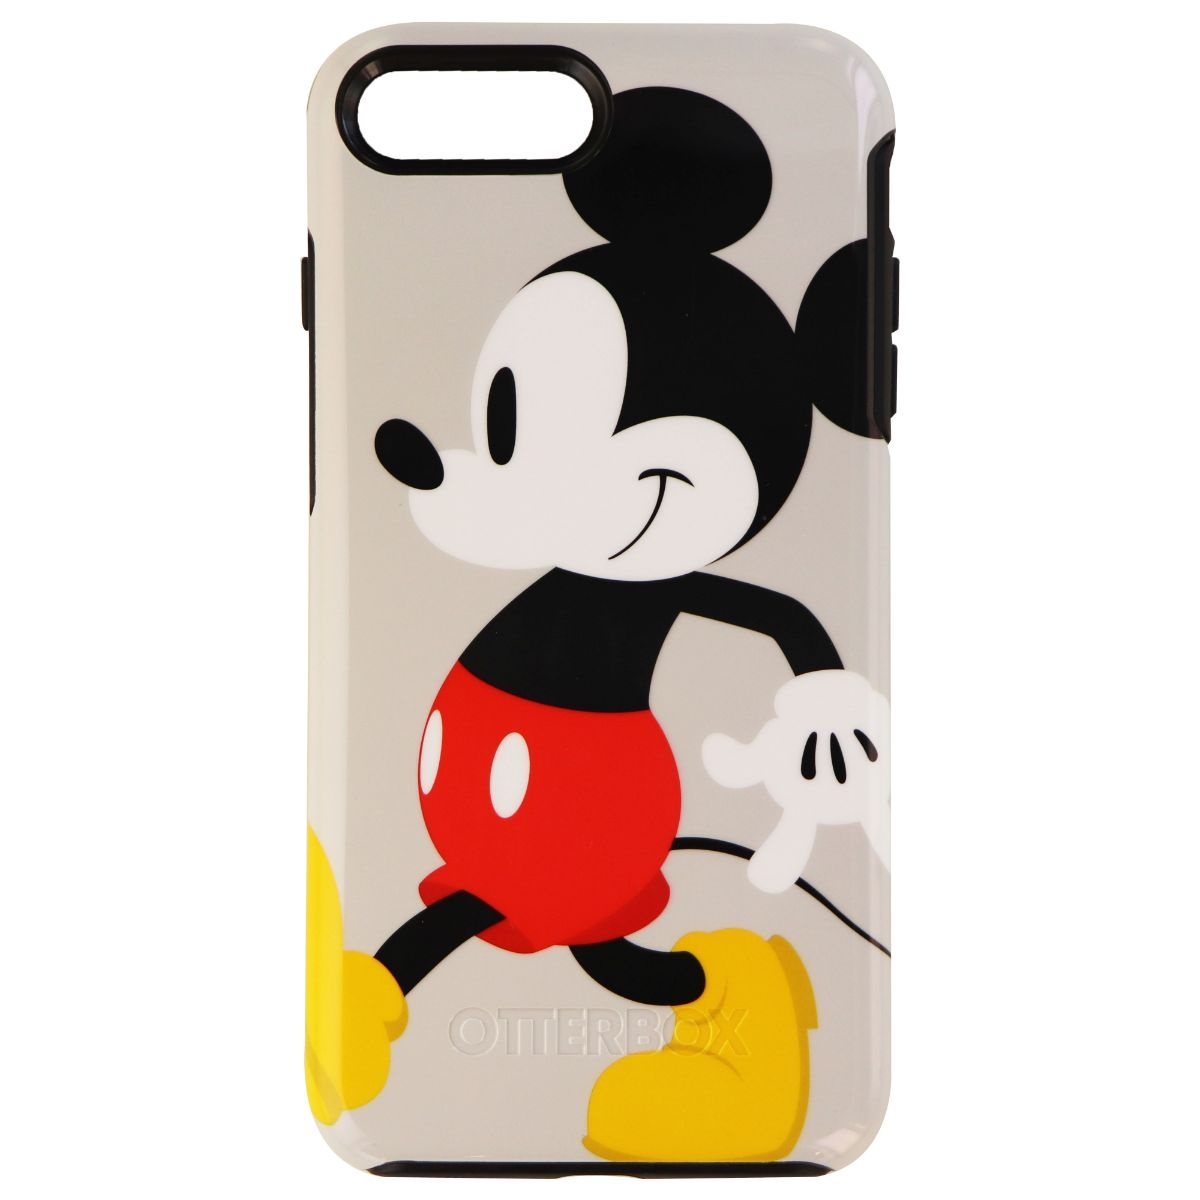 Otterbox Symmetry Disney Series Case Apple iPhone 8 Plus / 7 Plus - Mickey Mouse